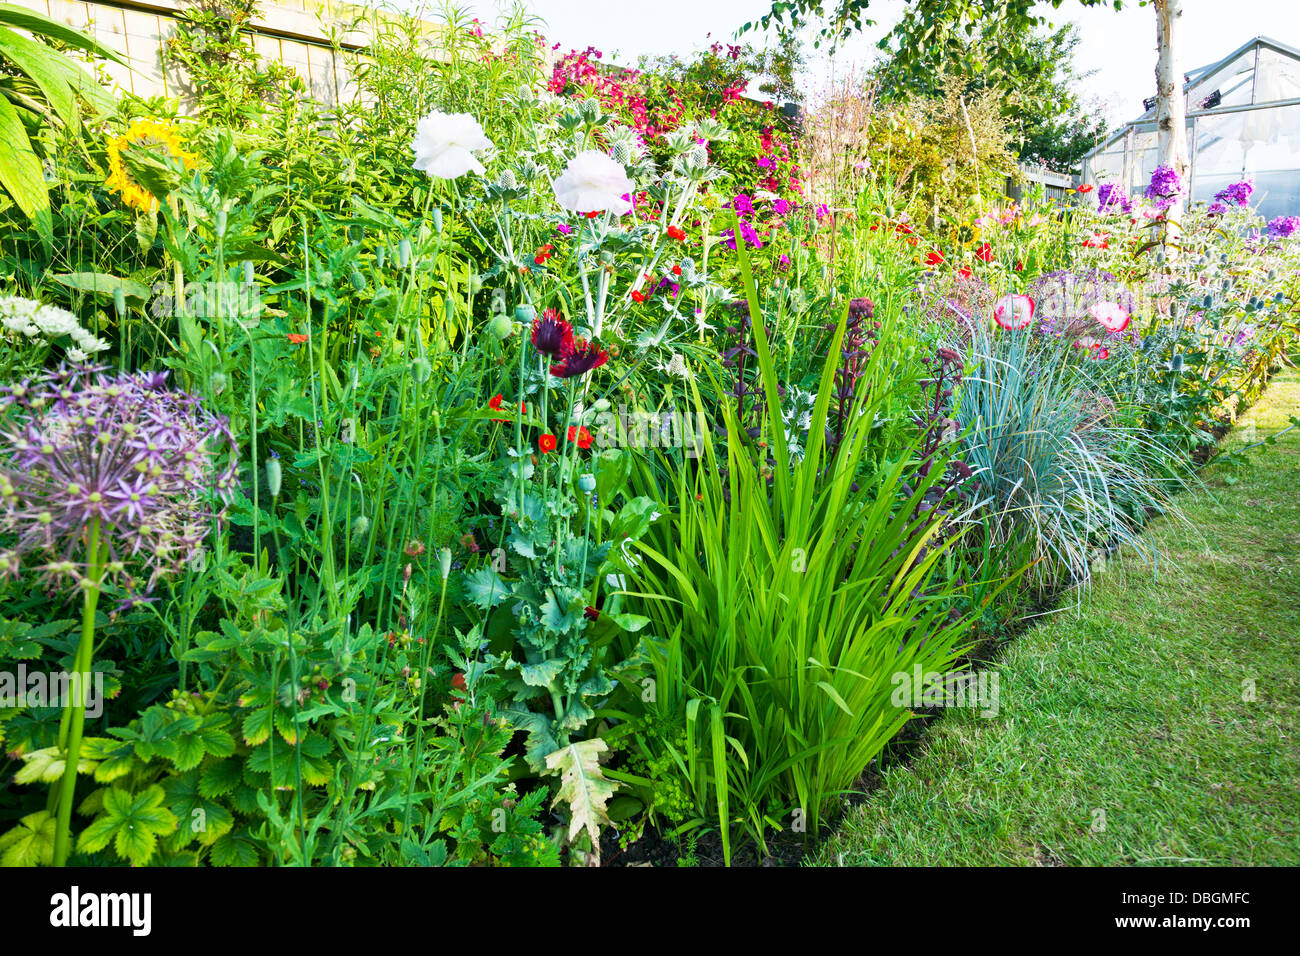 English garden plants typical english garden plants for Typical landscaping plants